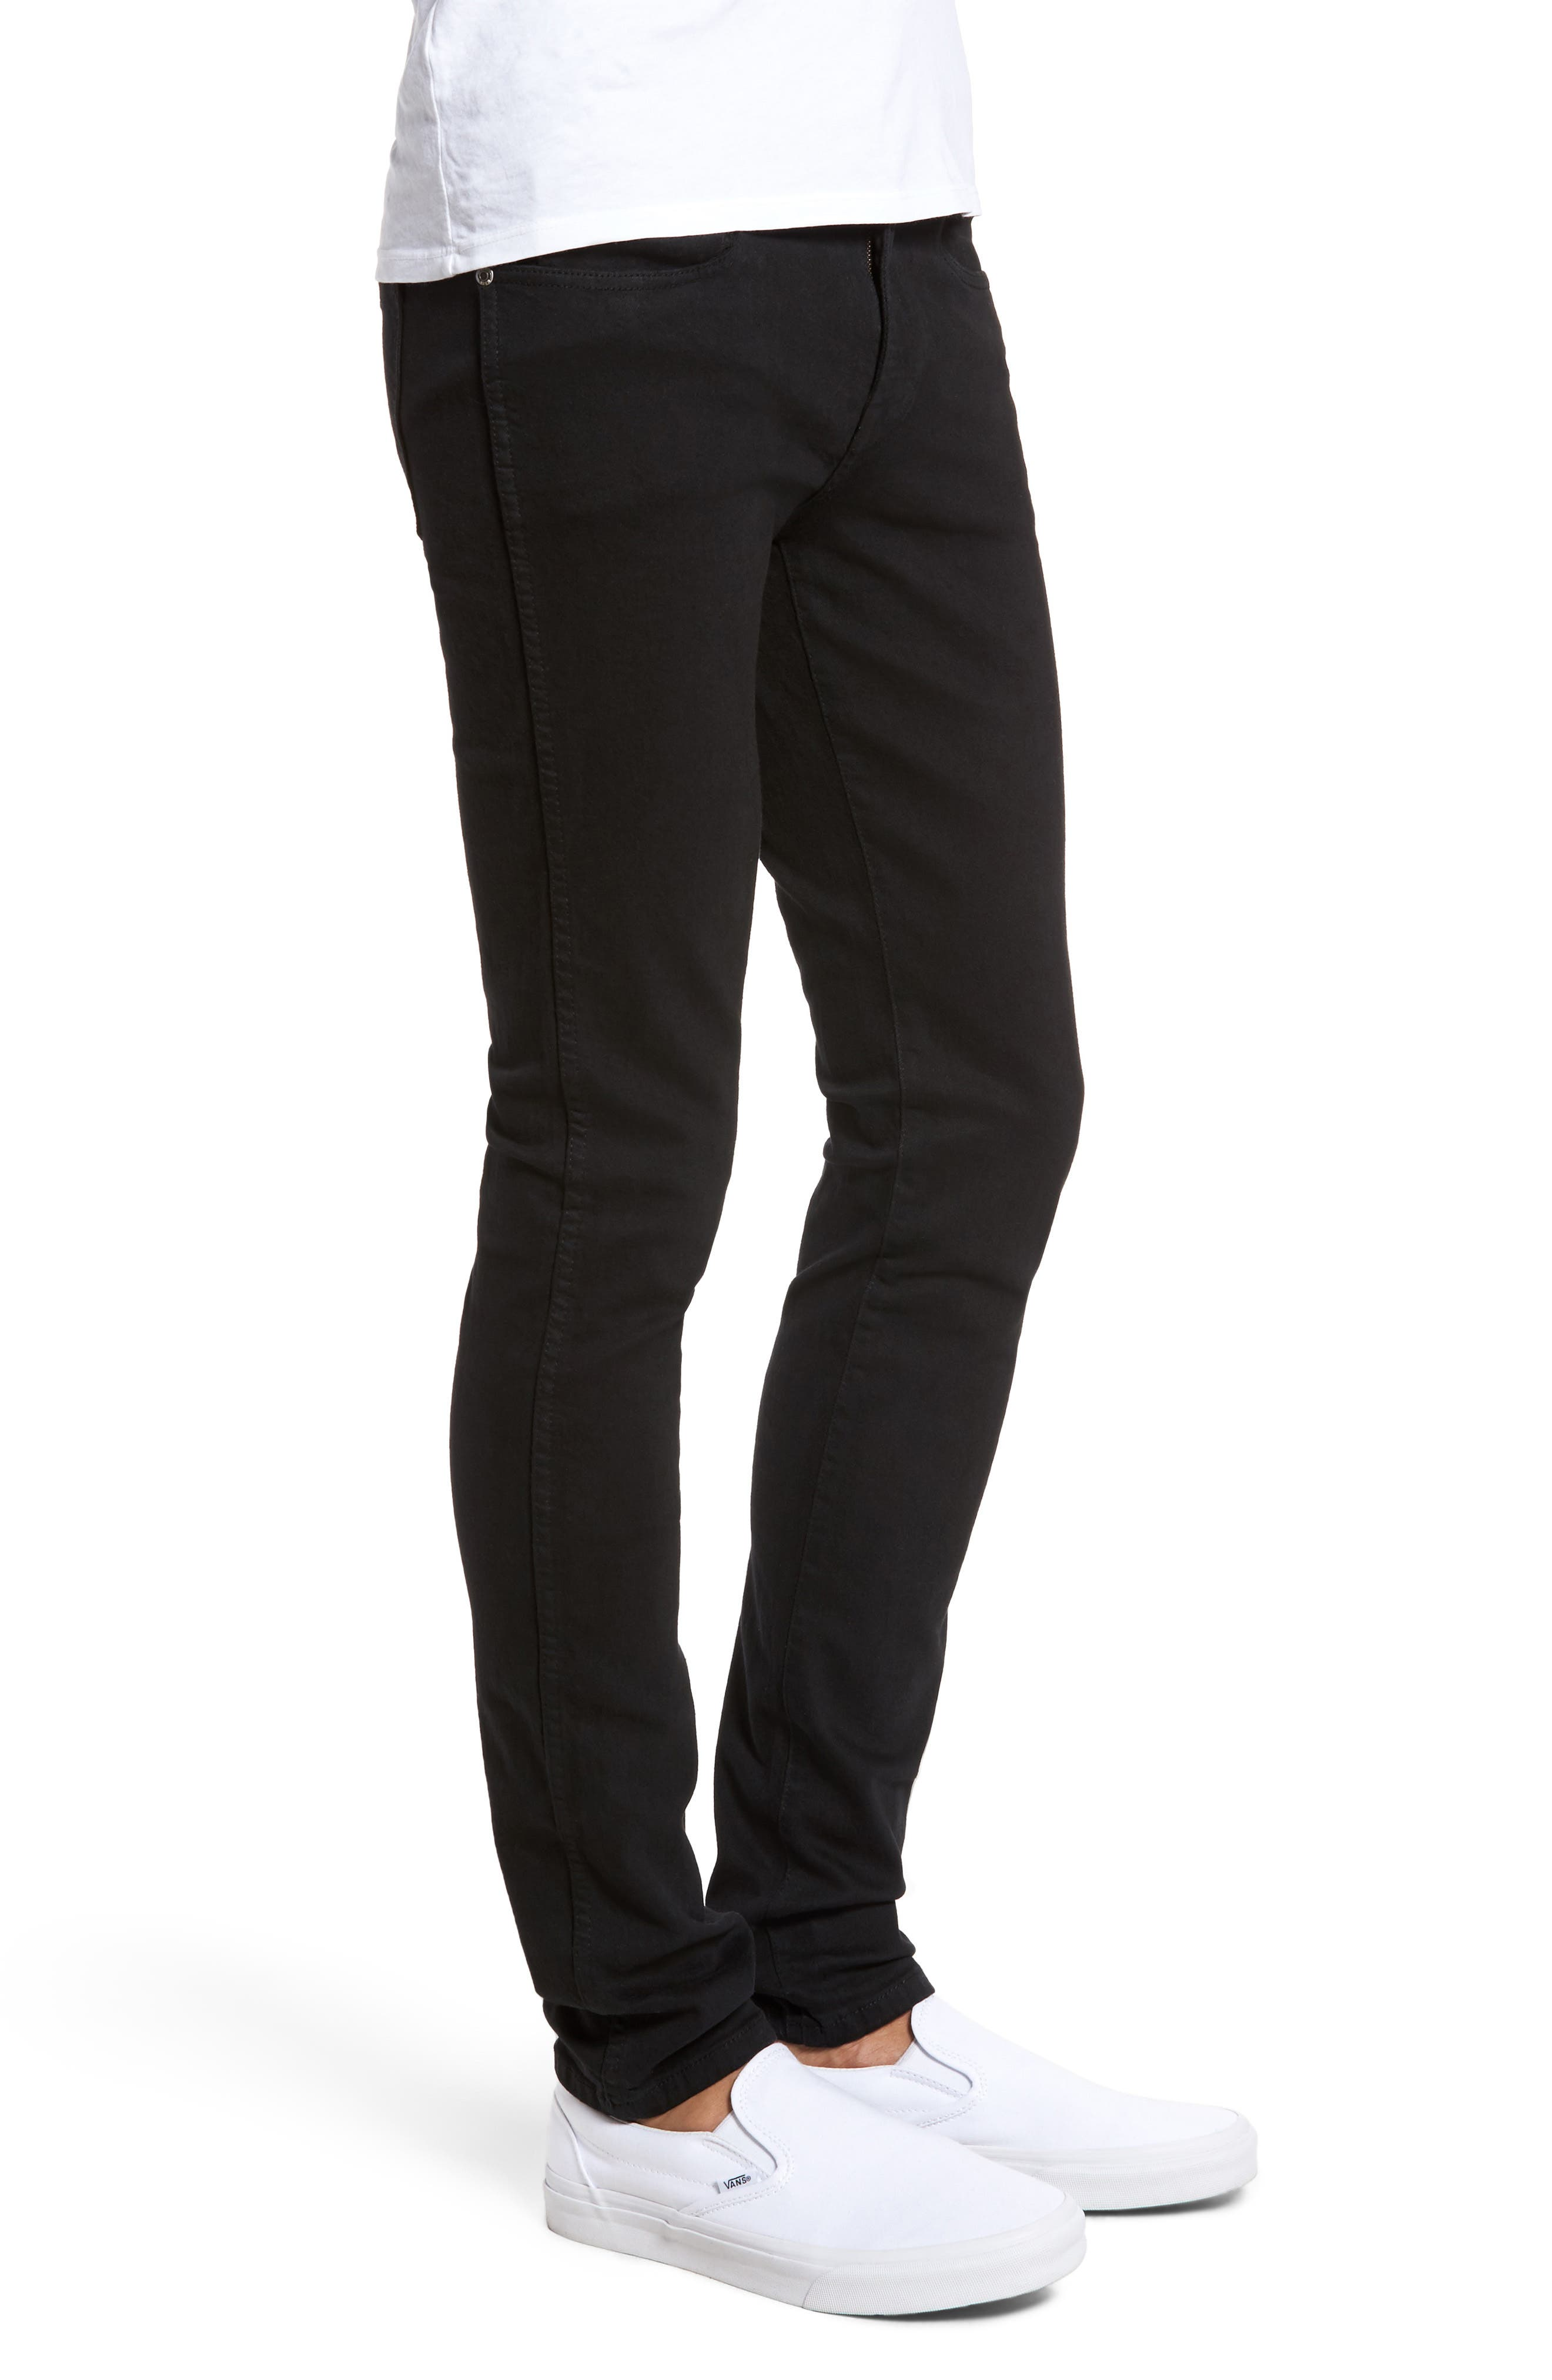 Snap Skinny Fit Jeans,                             Alternate thumbnail 3, color,                             BLACK